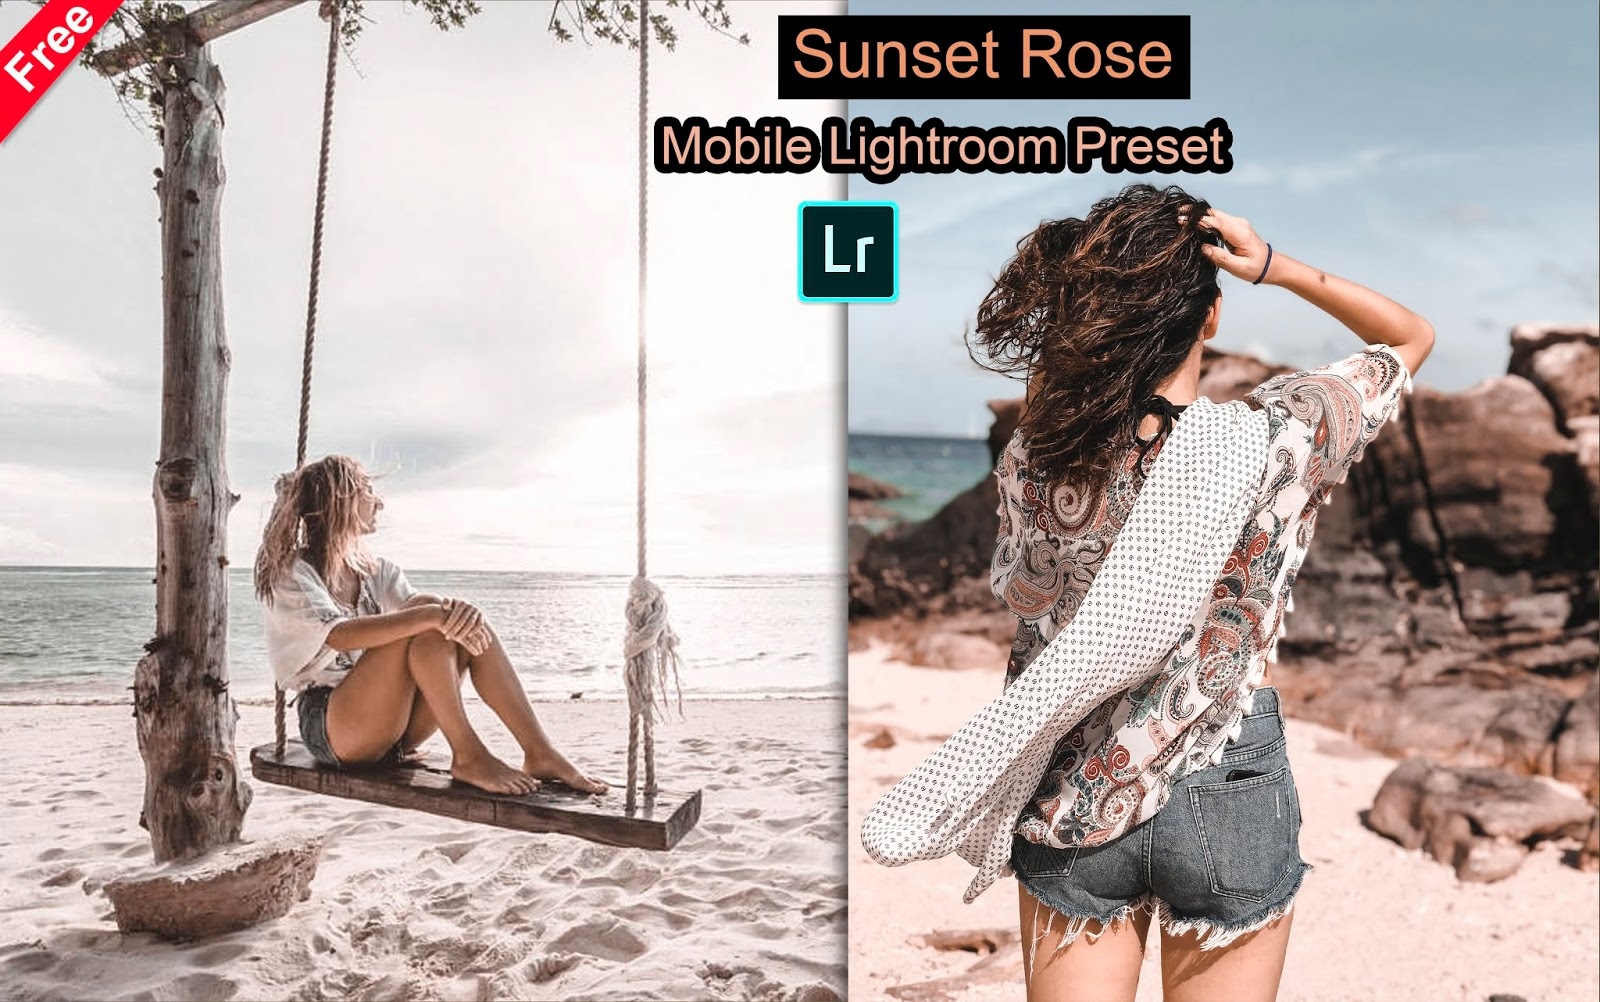 Download Sunset Rose Mobile Lightroom Preset for Free | How to Edit Your Photos with Sunset Rose Effect in Mobile Lightroom App